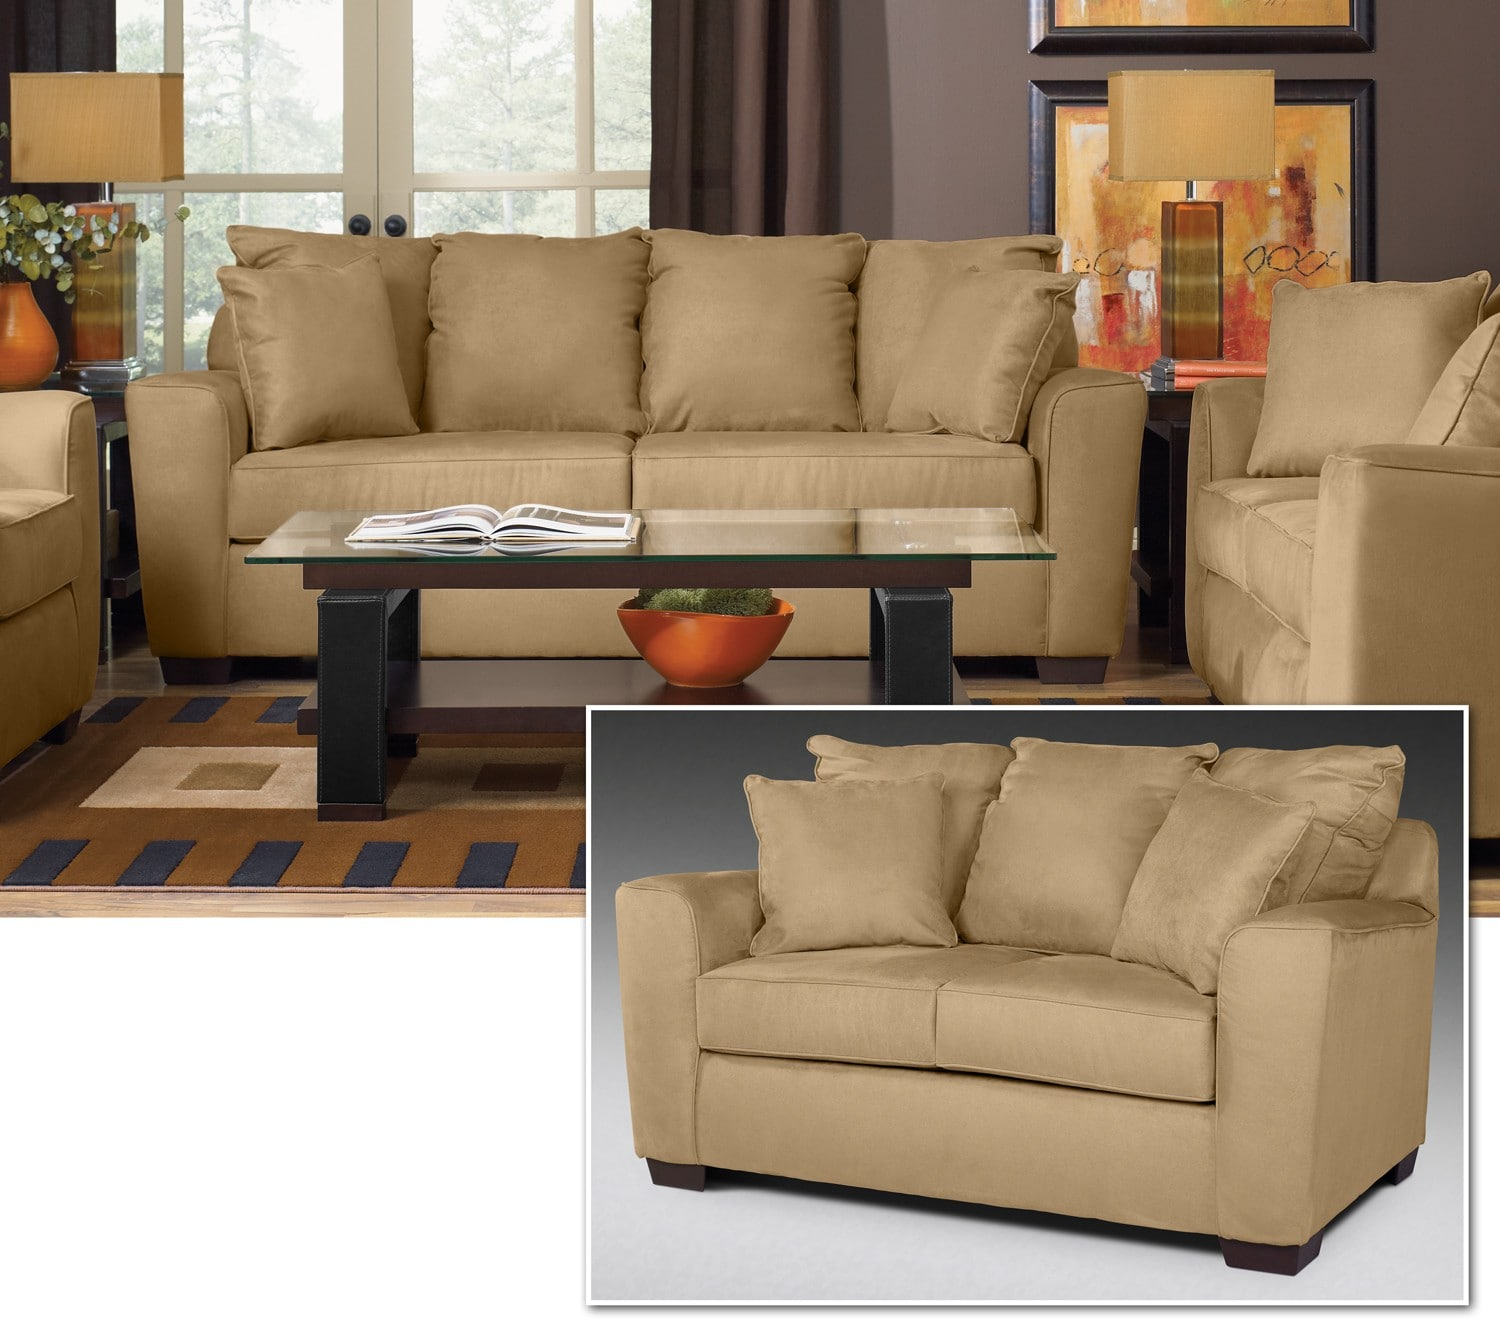 Furniture Package Deals Living Room Package Deals Living Room Decor